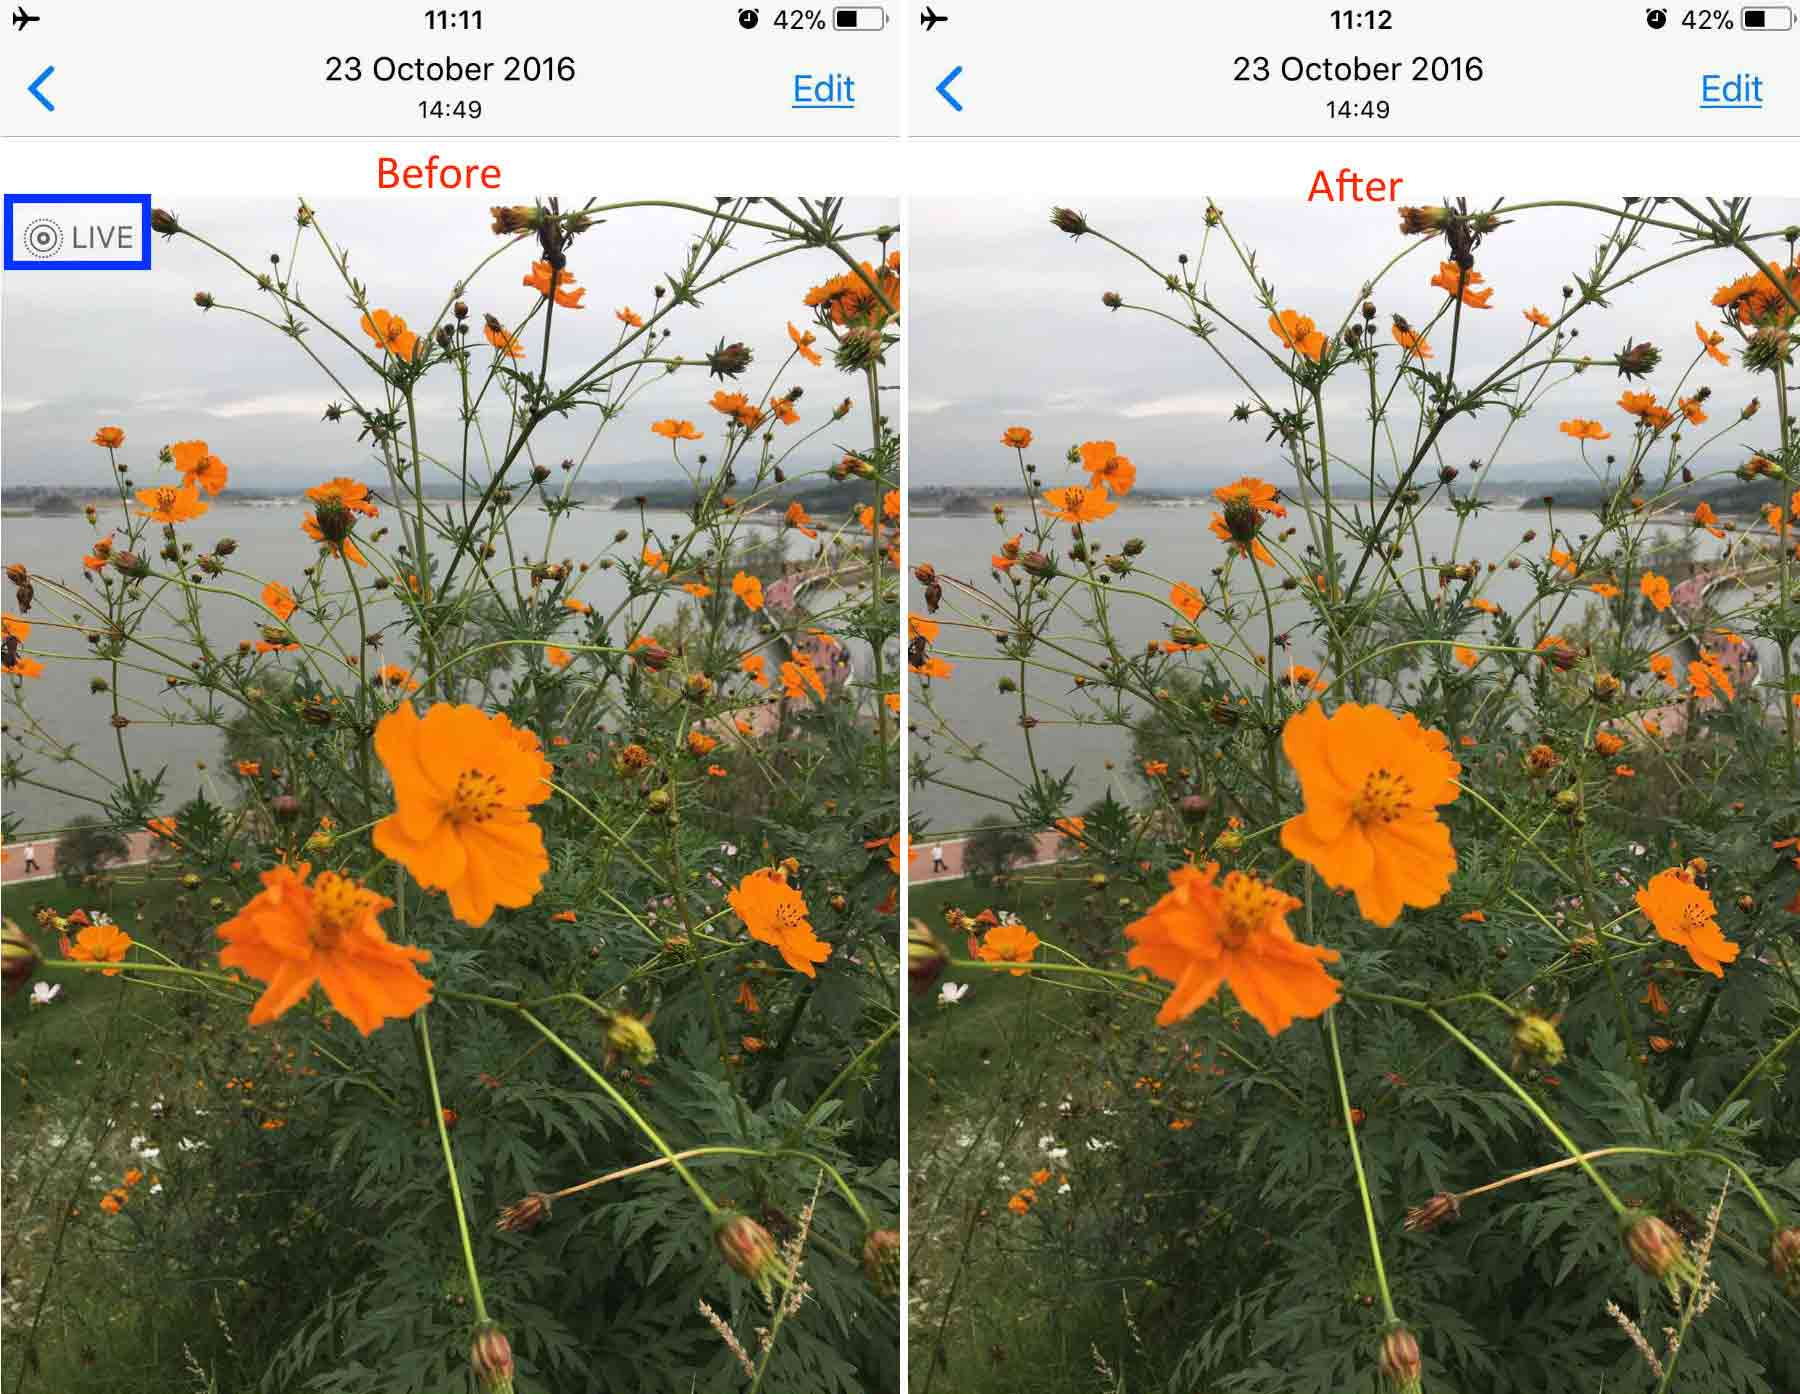 Convert Live Photo to Still by Photo Editing - Step 3